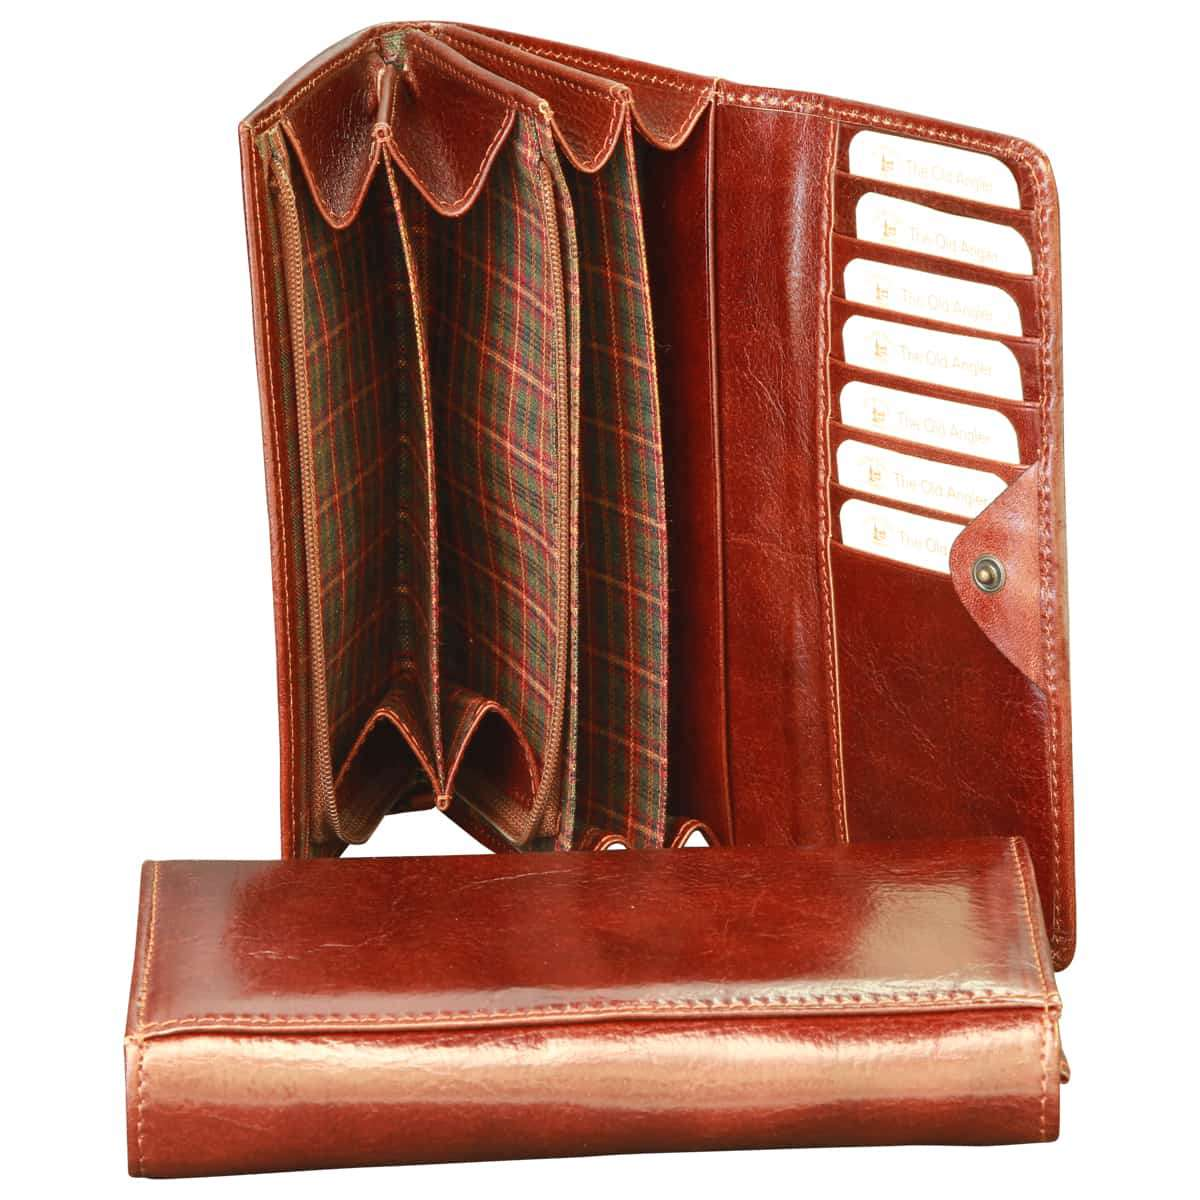 Vachetta leather wallet for women - Brown | 801605MA UK | Old Angler Firenze